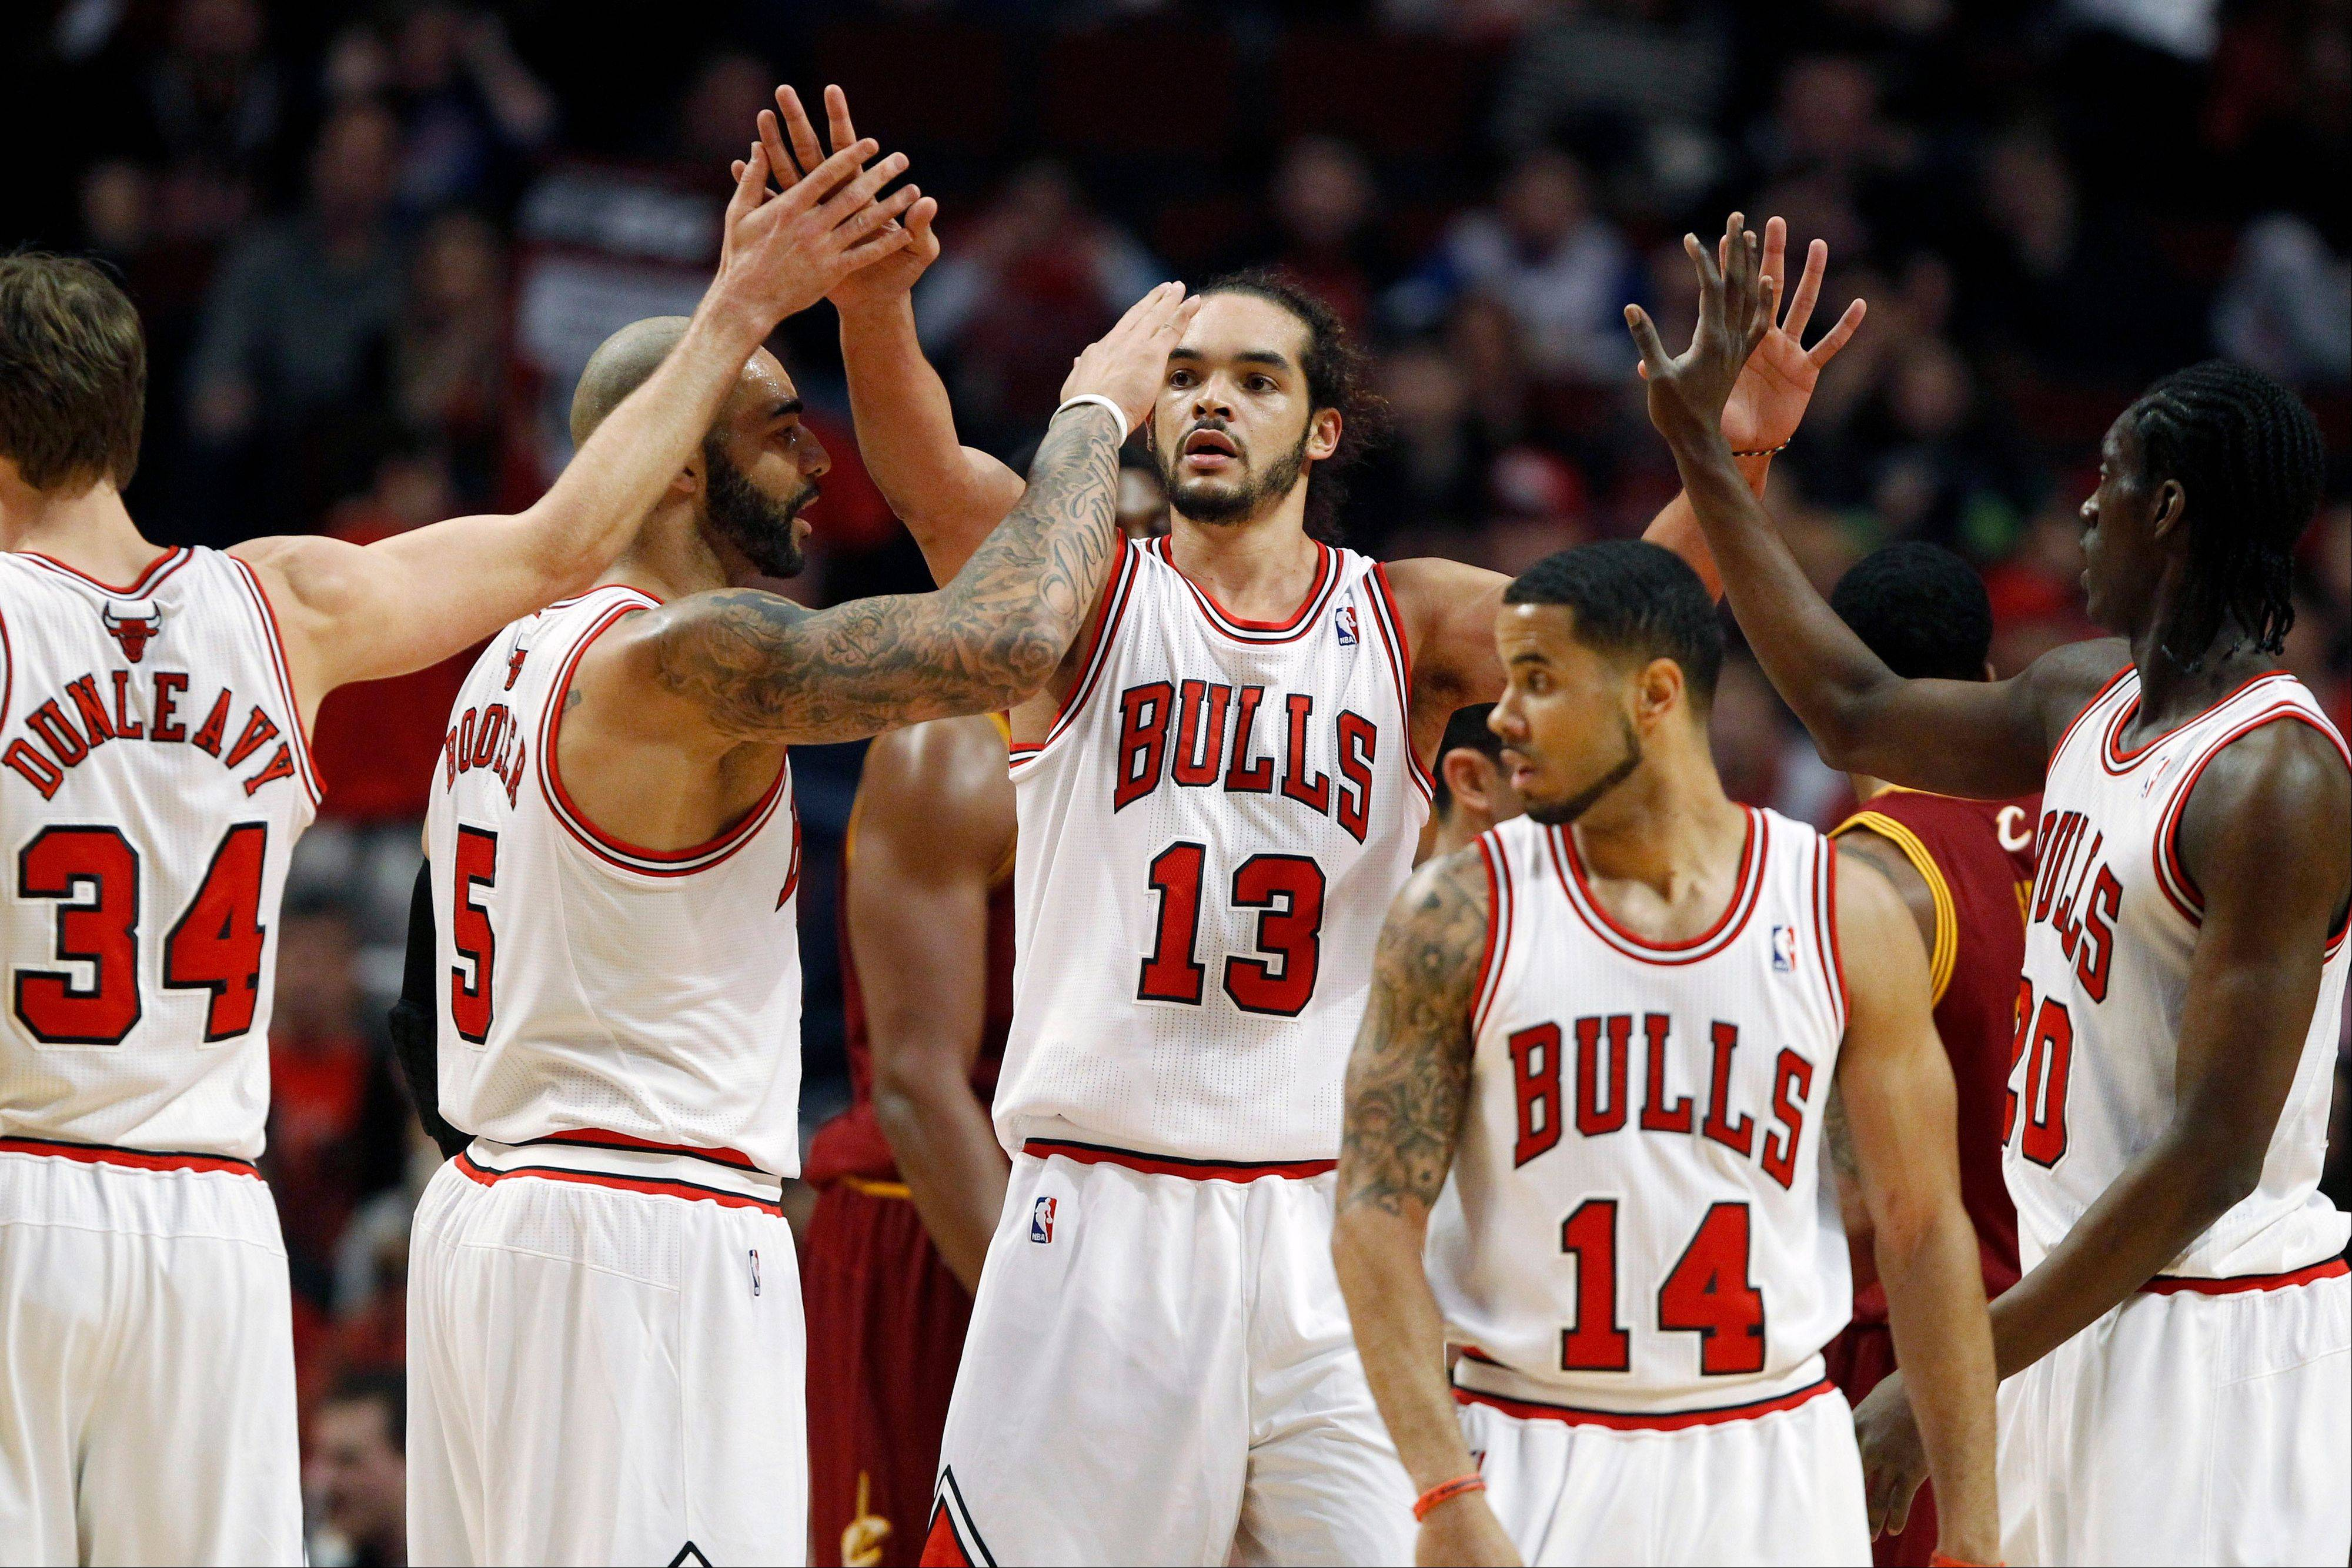 Noah misses Bulls practice, but Deng returns